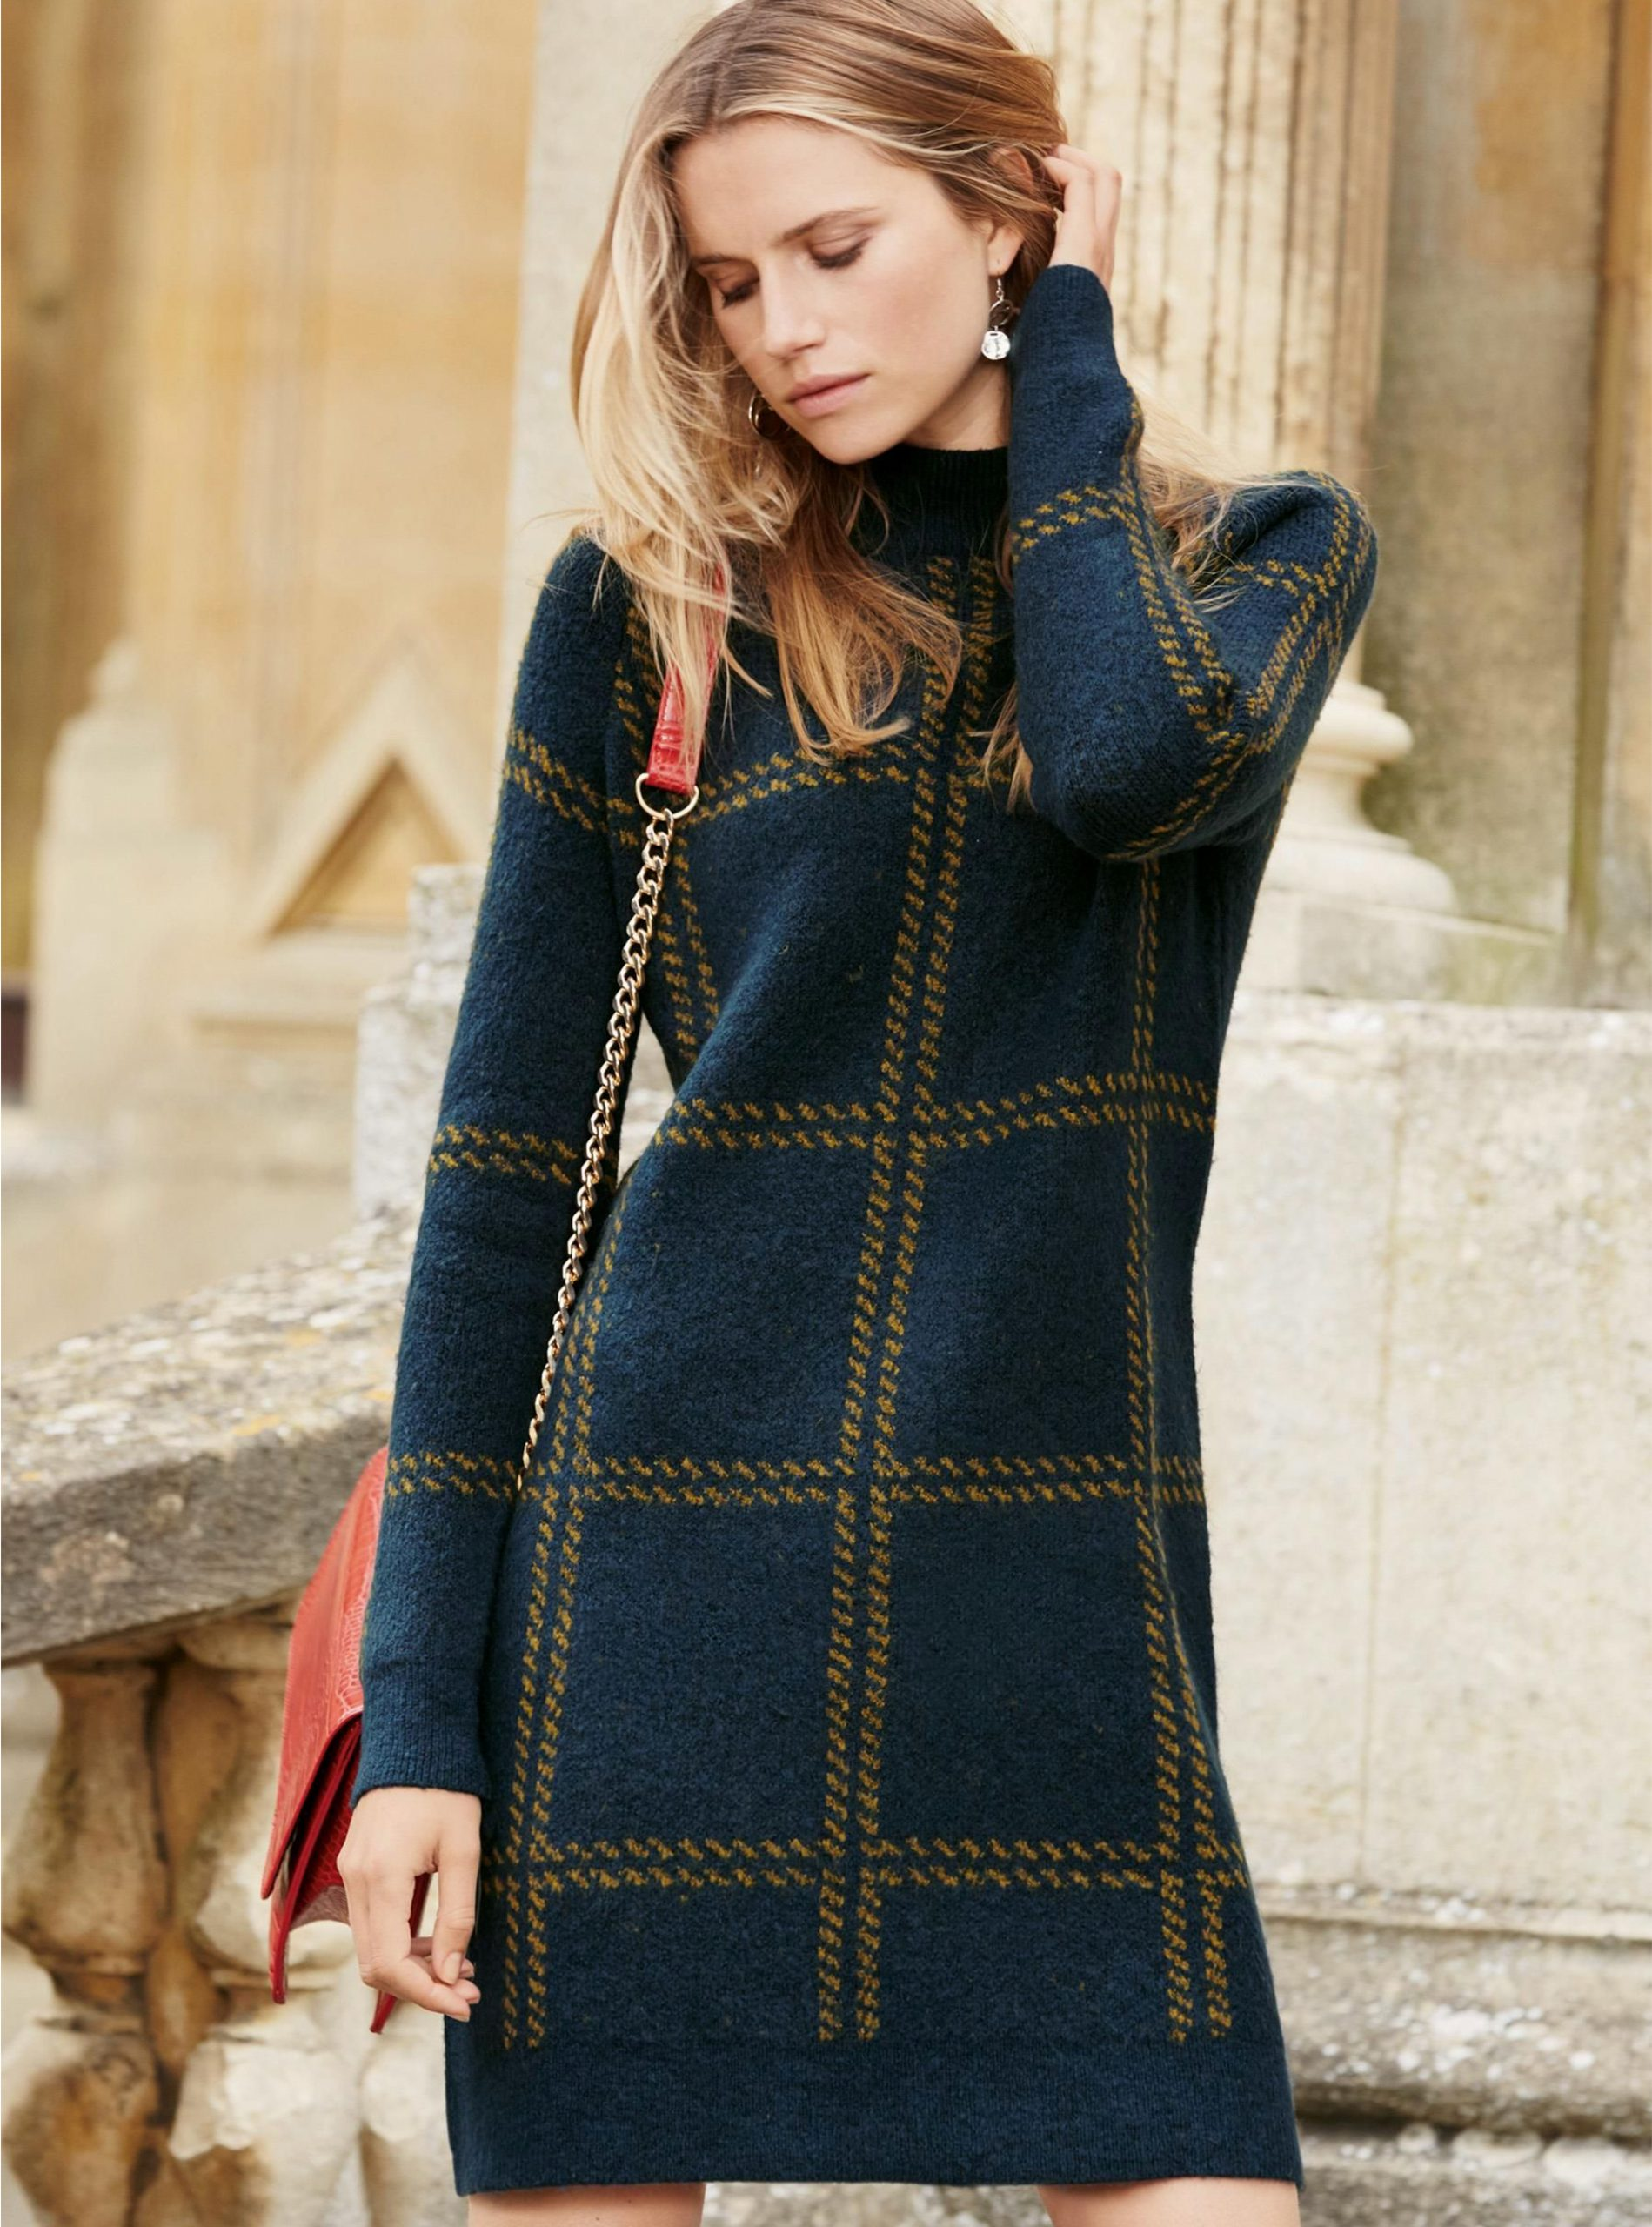 The Jumper Dresses That Will Keep You Toasty This Winter